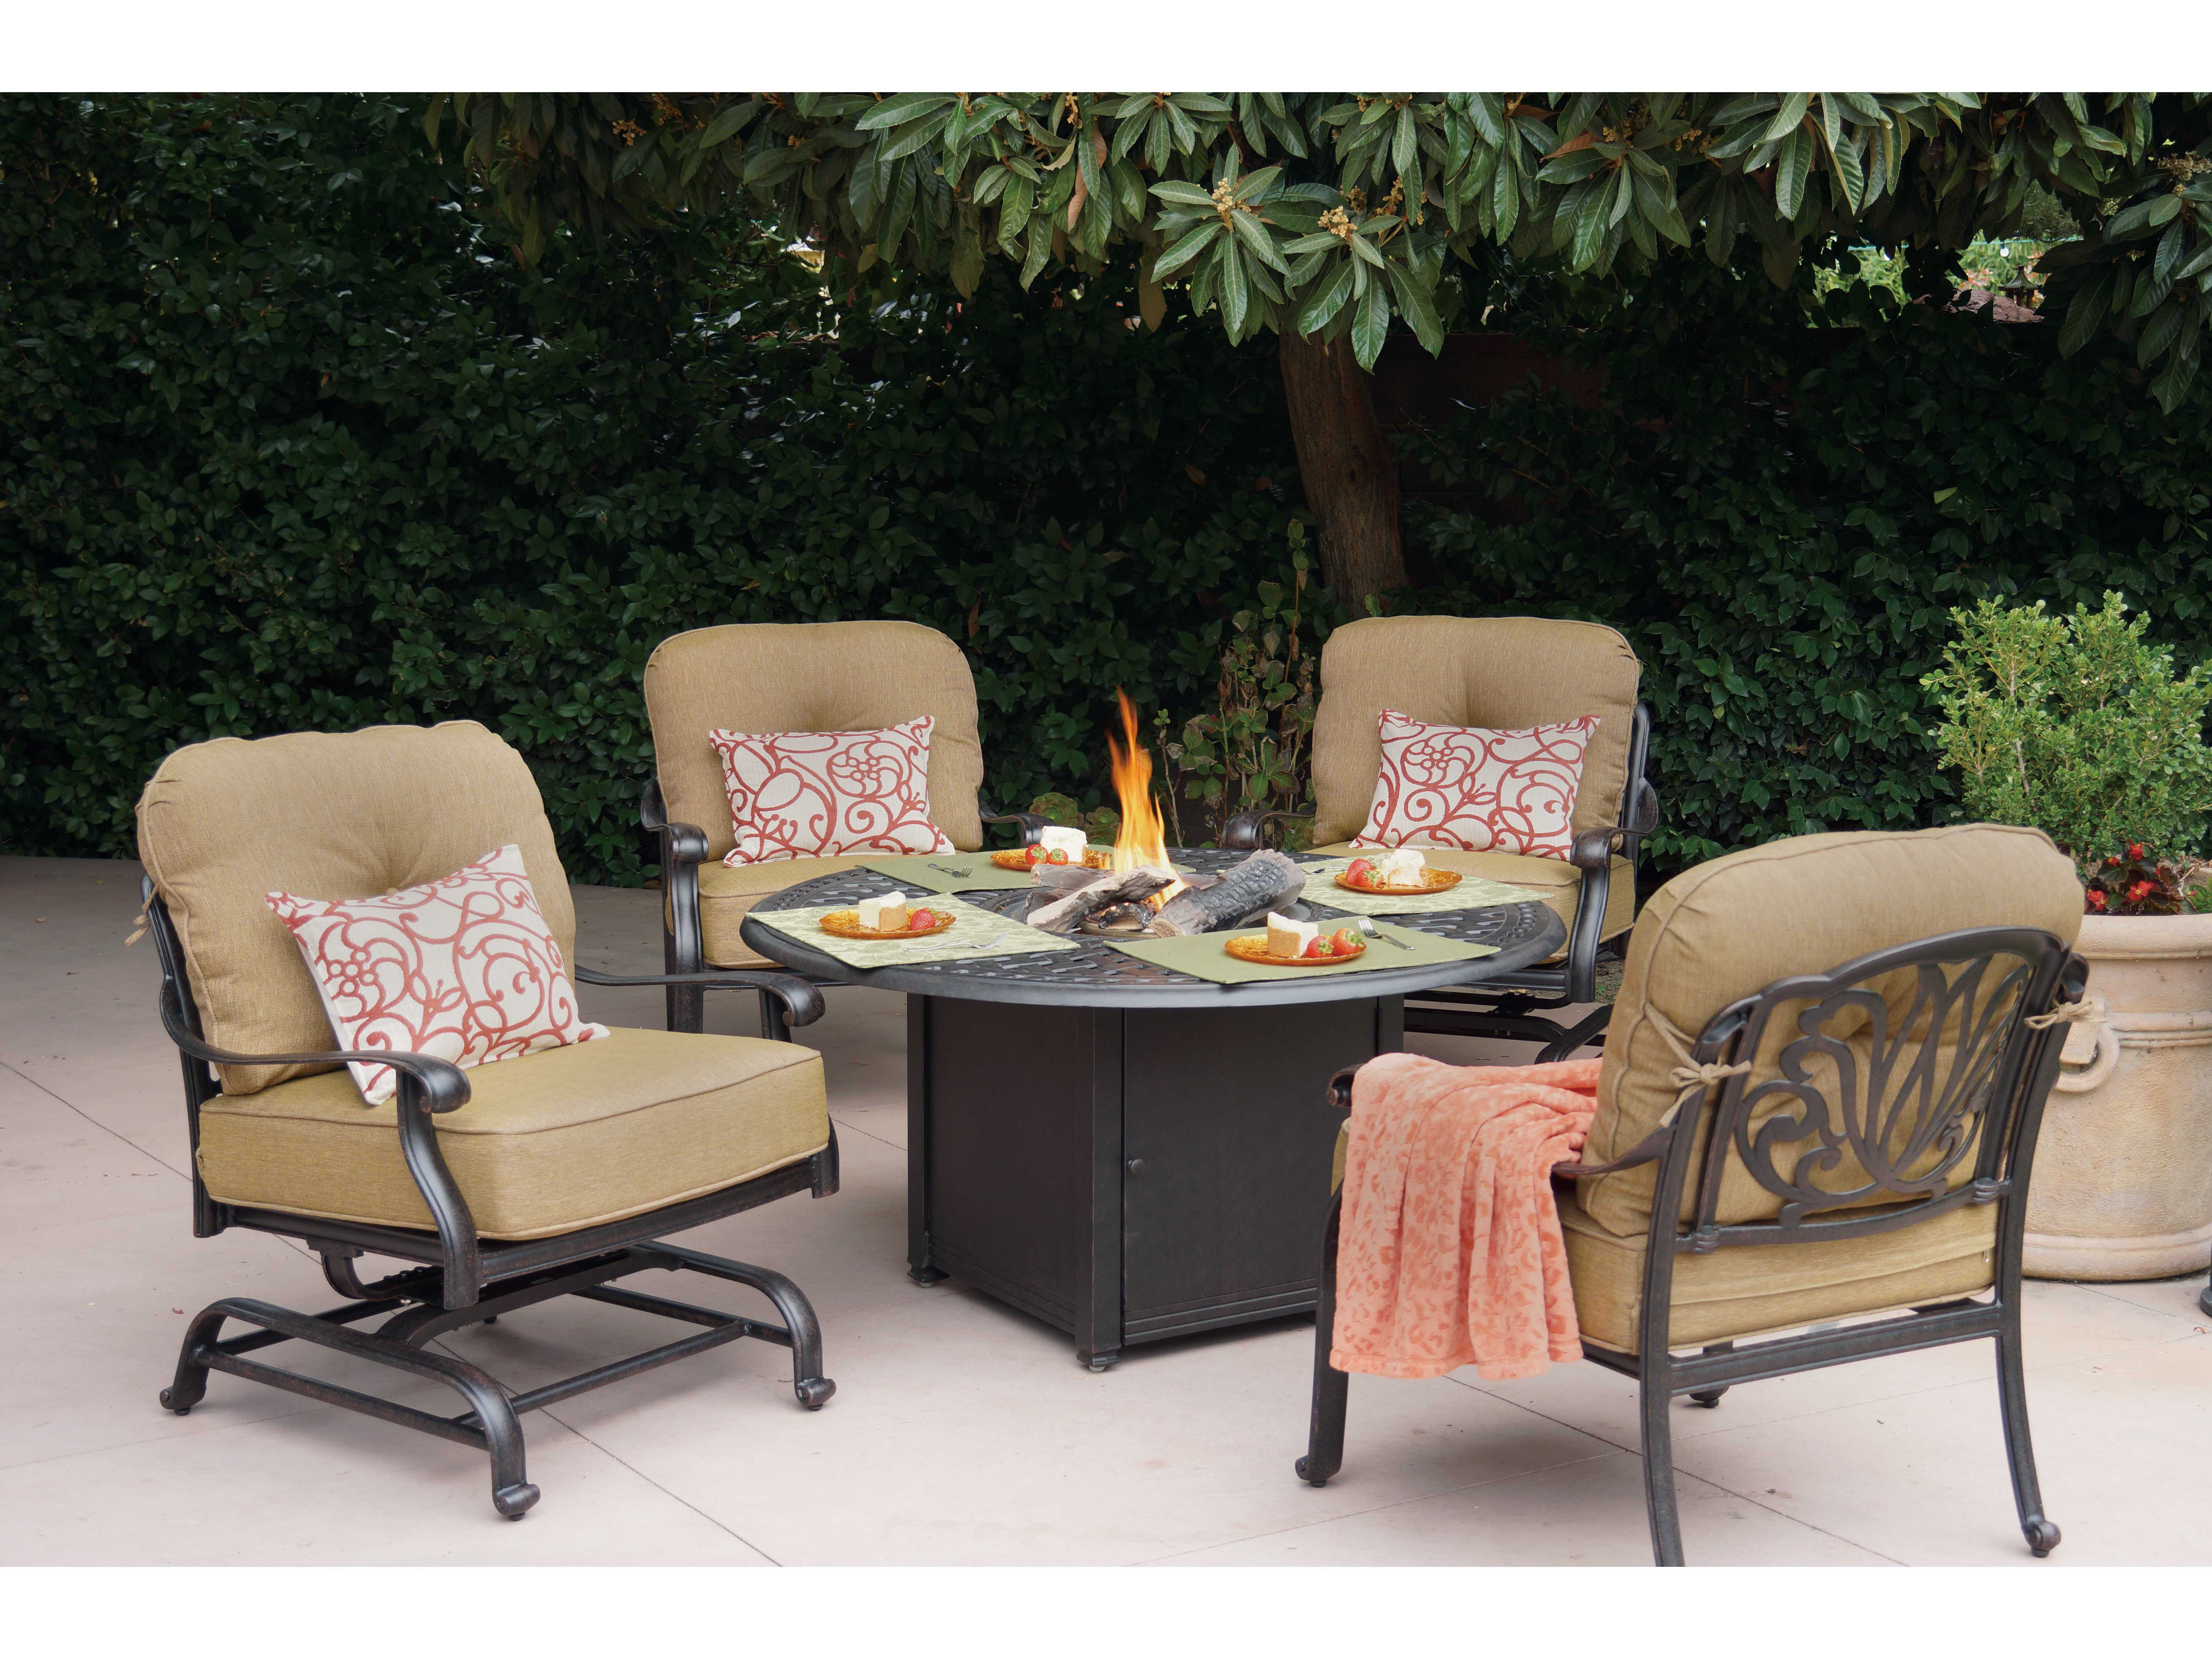 Darlee Outdoor Living Series 60 Cast Aluminum 60 Round ... on Outdoor Dining Tables With Fire Pit id=99729